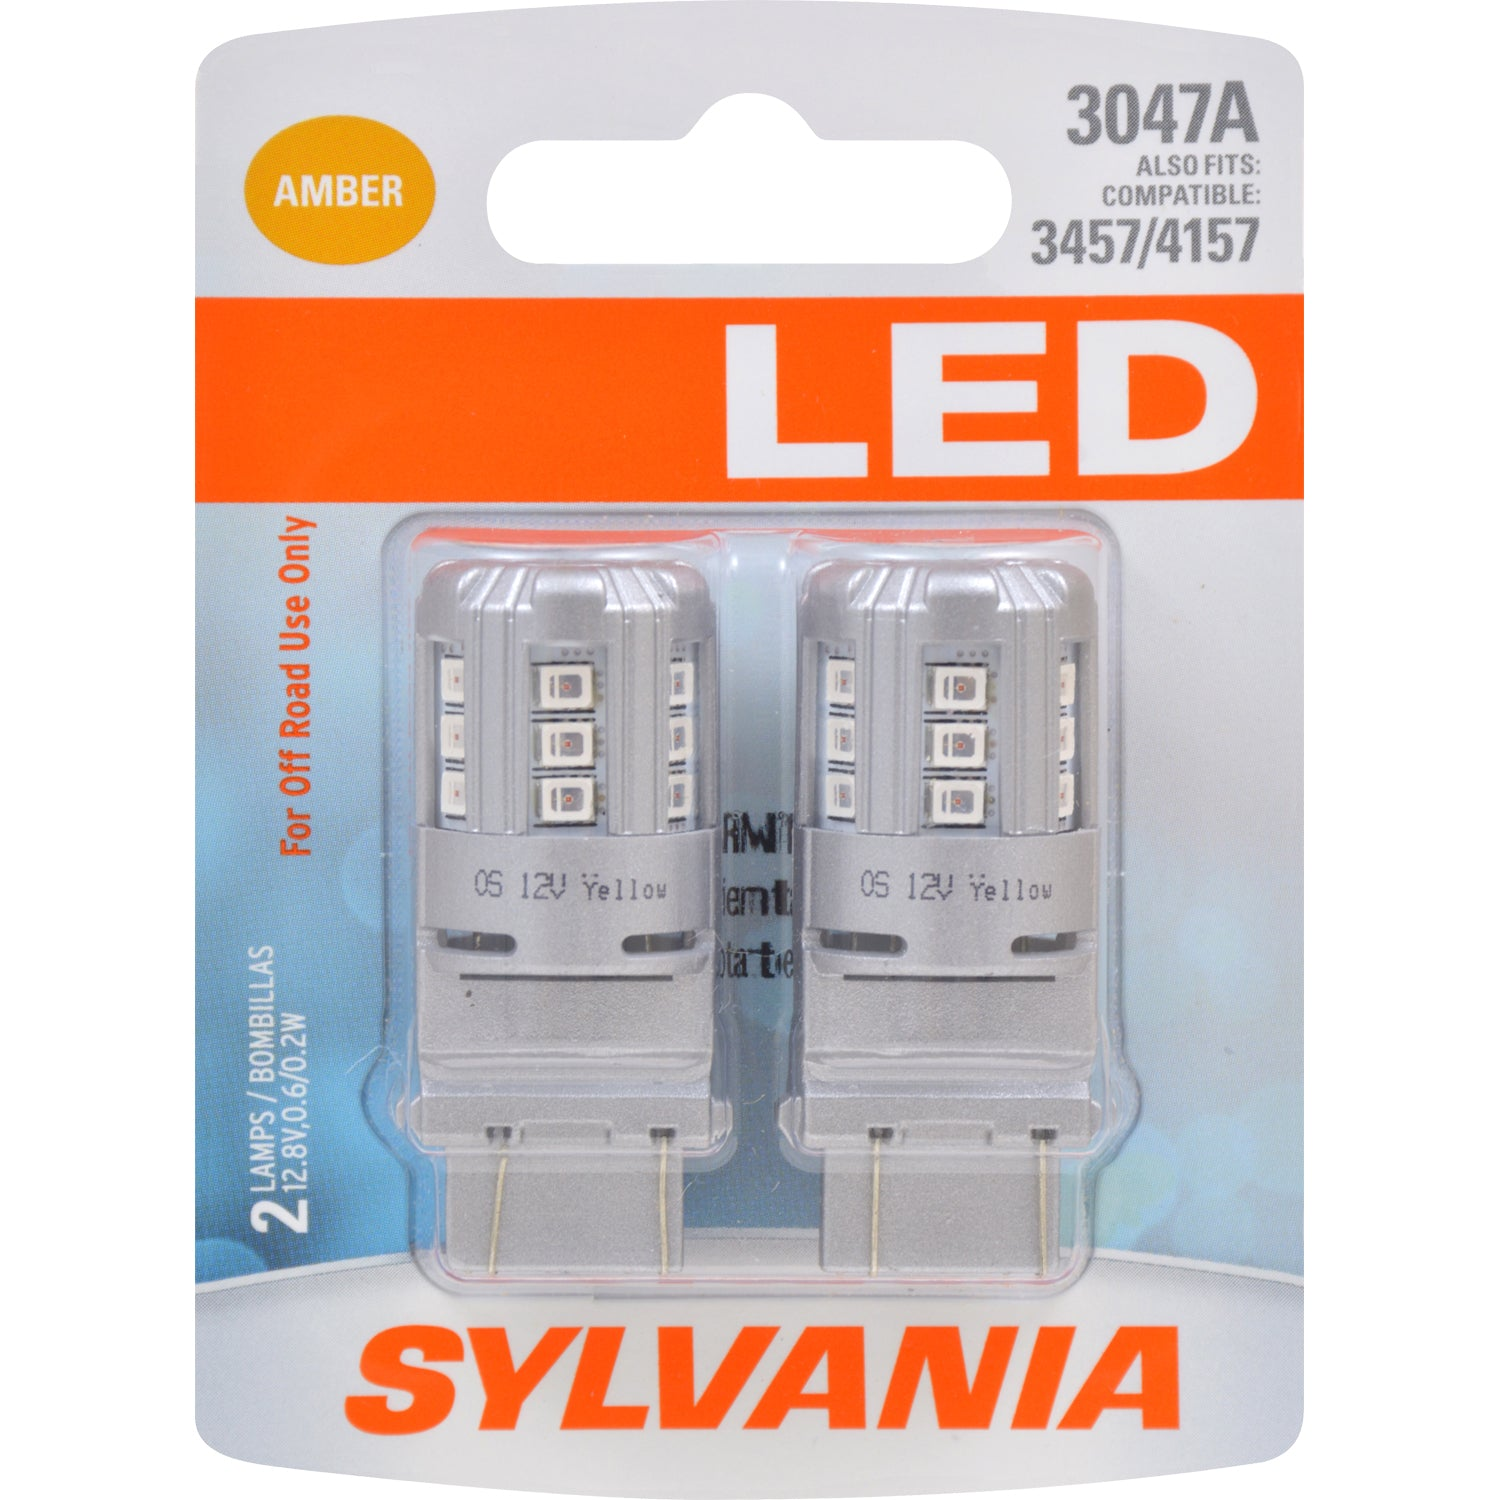 2-PK SYLVANIA 3047 Amber LED Automotive Bulb